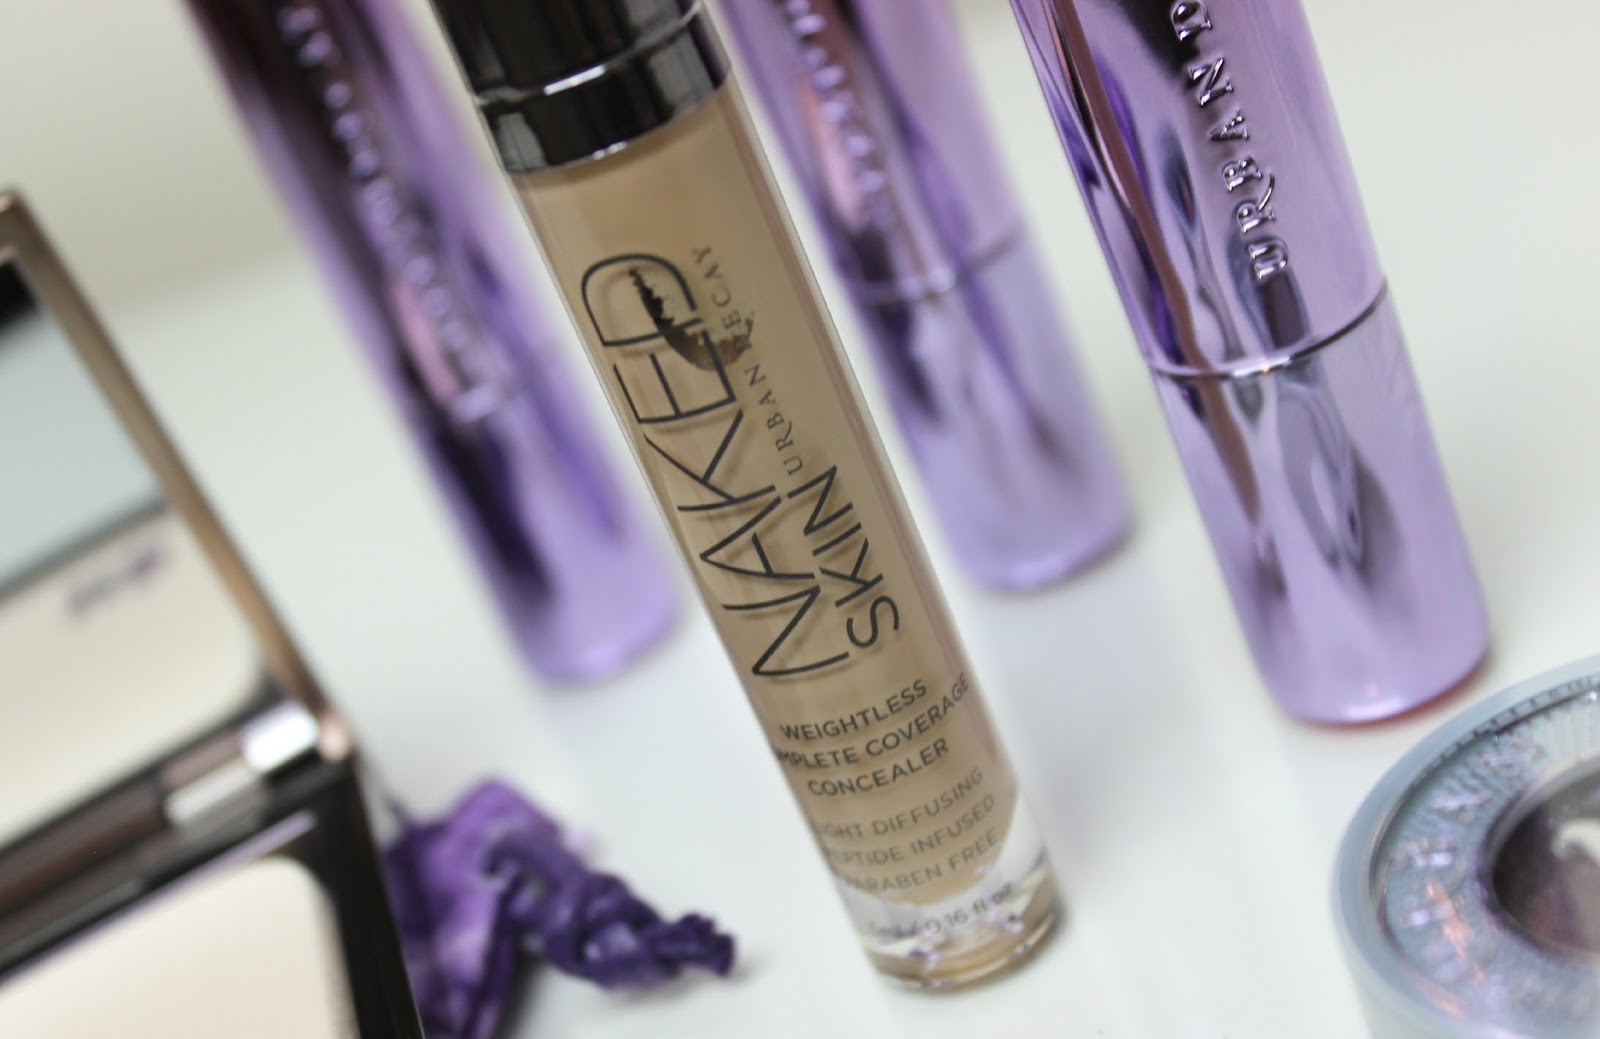 A picture of the Naked Skin Weightless Complete Coverage Concealer